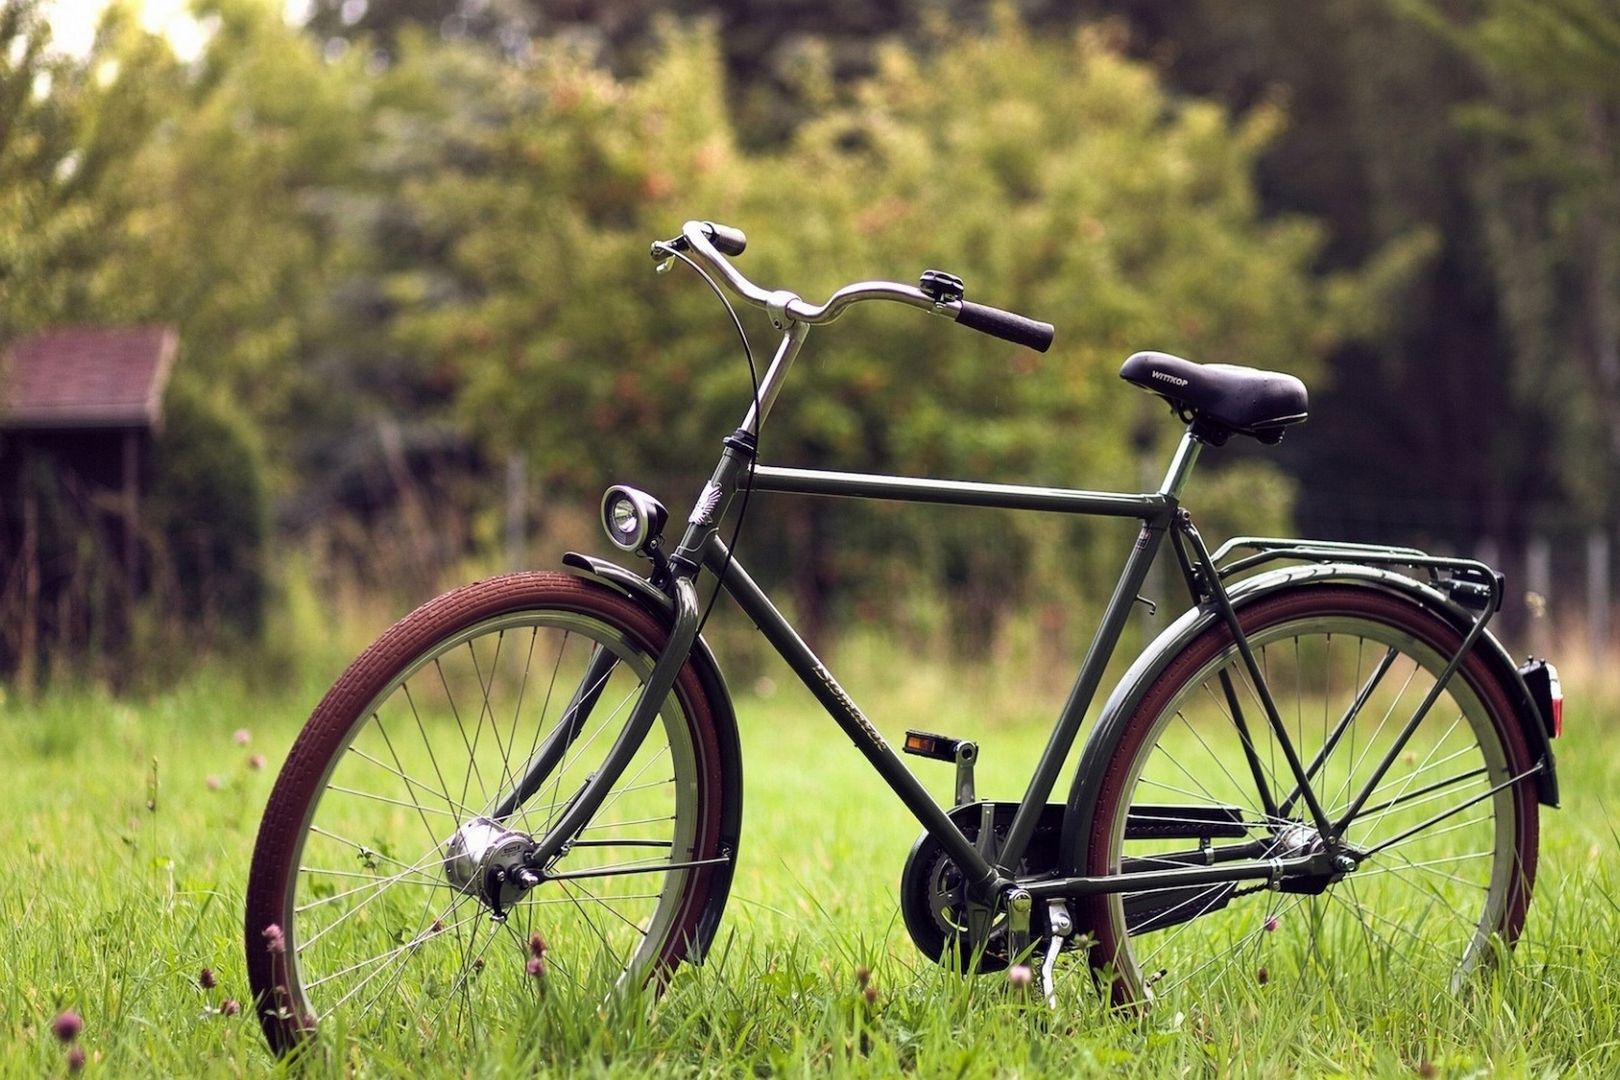 Creative_Wallpaper_Bicycle_on_the_grass_079830_ копия